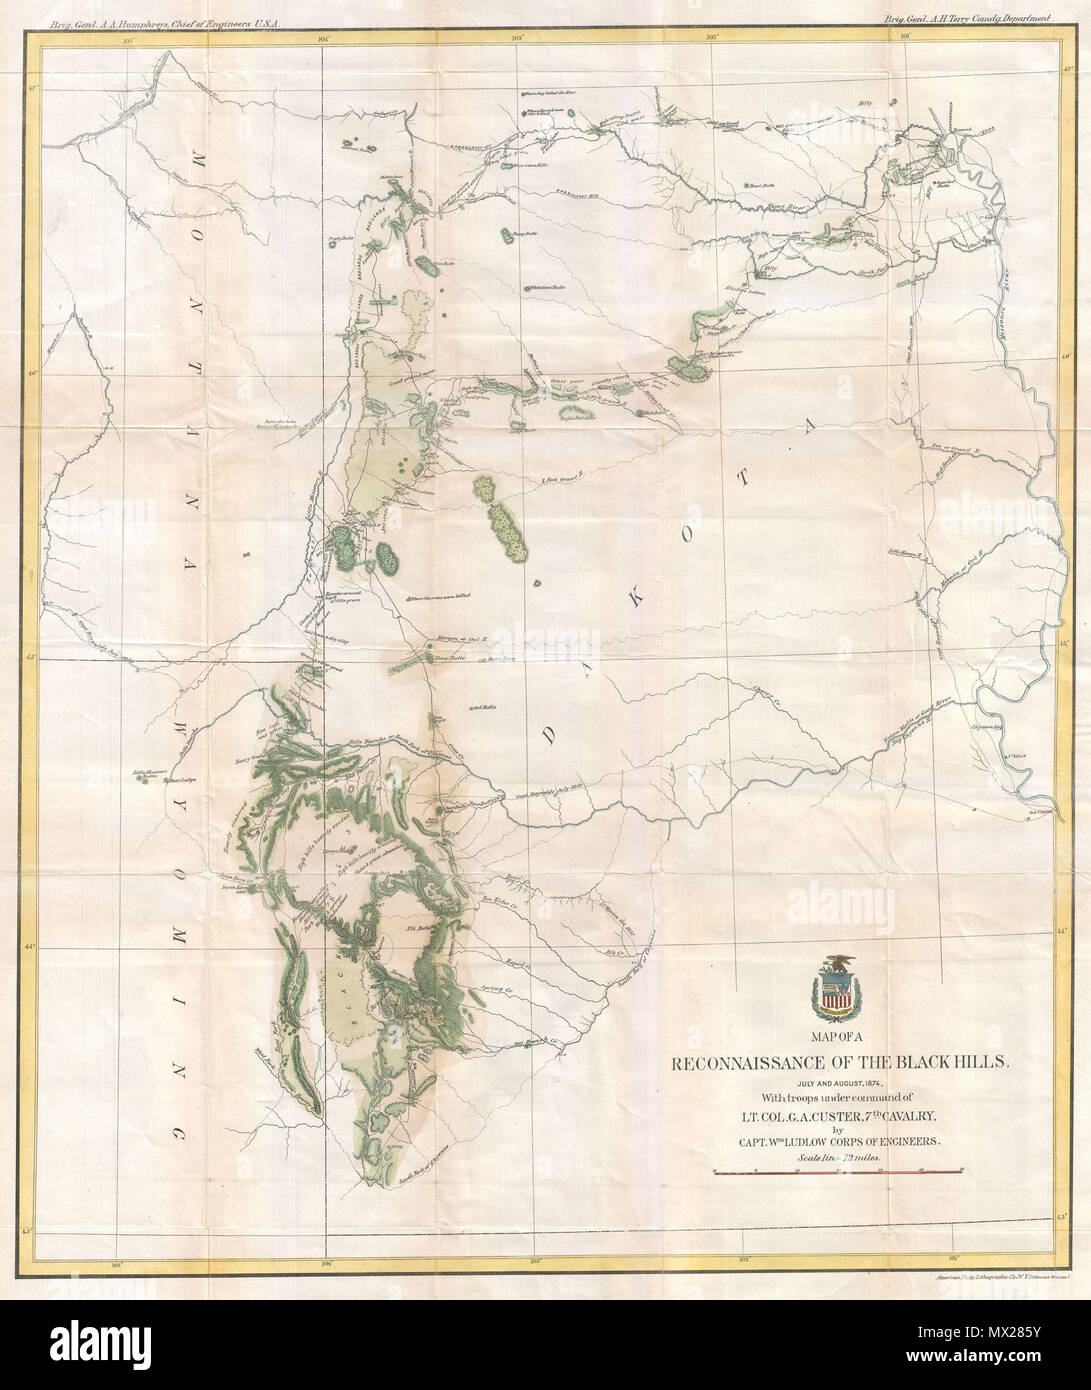 . Map of a Reconnaissance of the Black Hills, July and August, 1874, With troops under command of Lt. Col. G. A. Custer, 7th Cavalry, by Capt. Wm Ludlow Corps of Engineers.  English: George Armstrong Custer and William Ludlow's seminal 1874 map of the Black Hills, Dakota Territory, covering from the Missouri to the Powder River and from the 47th to the 43rd parallel. In 1874 one thousand cavalrymen under the command of Lt. Col. George Armstrong Custer moved into the Black Hills region of Dakota Territory. Though officially American Indian territory according to the 1868 Treaty of Laramie, rumo Stock Photo